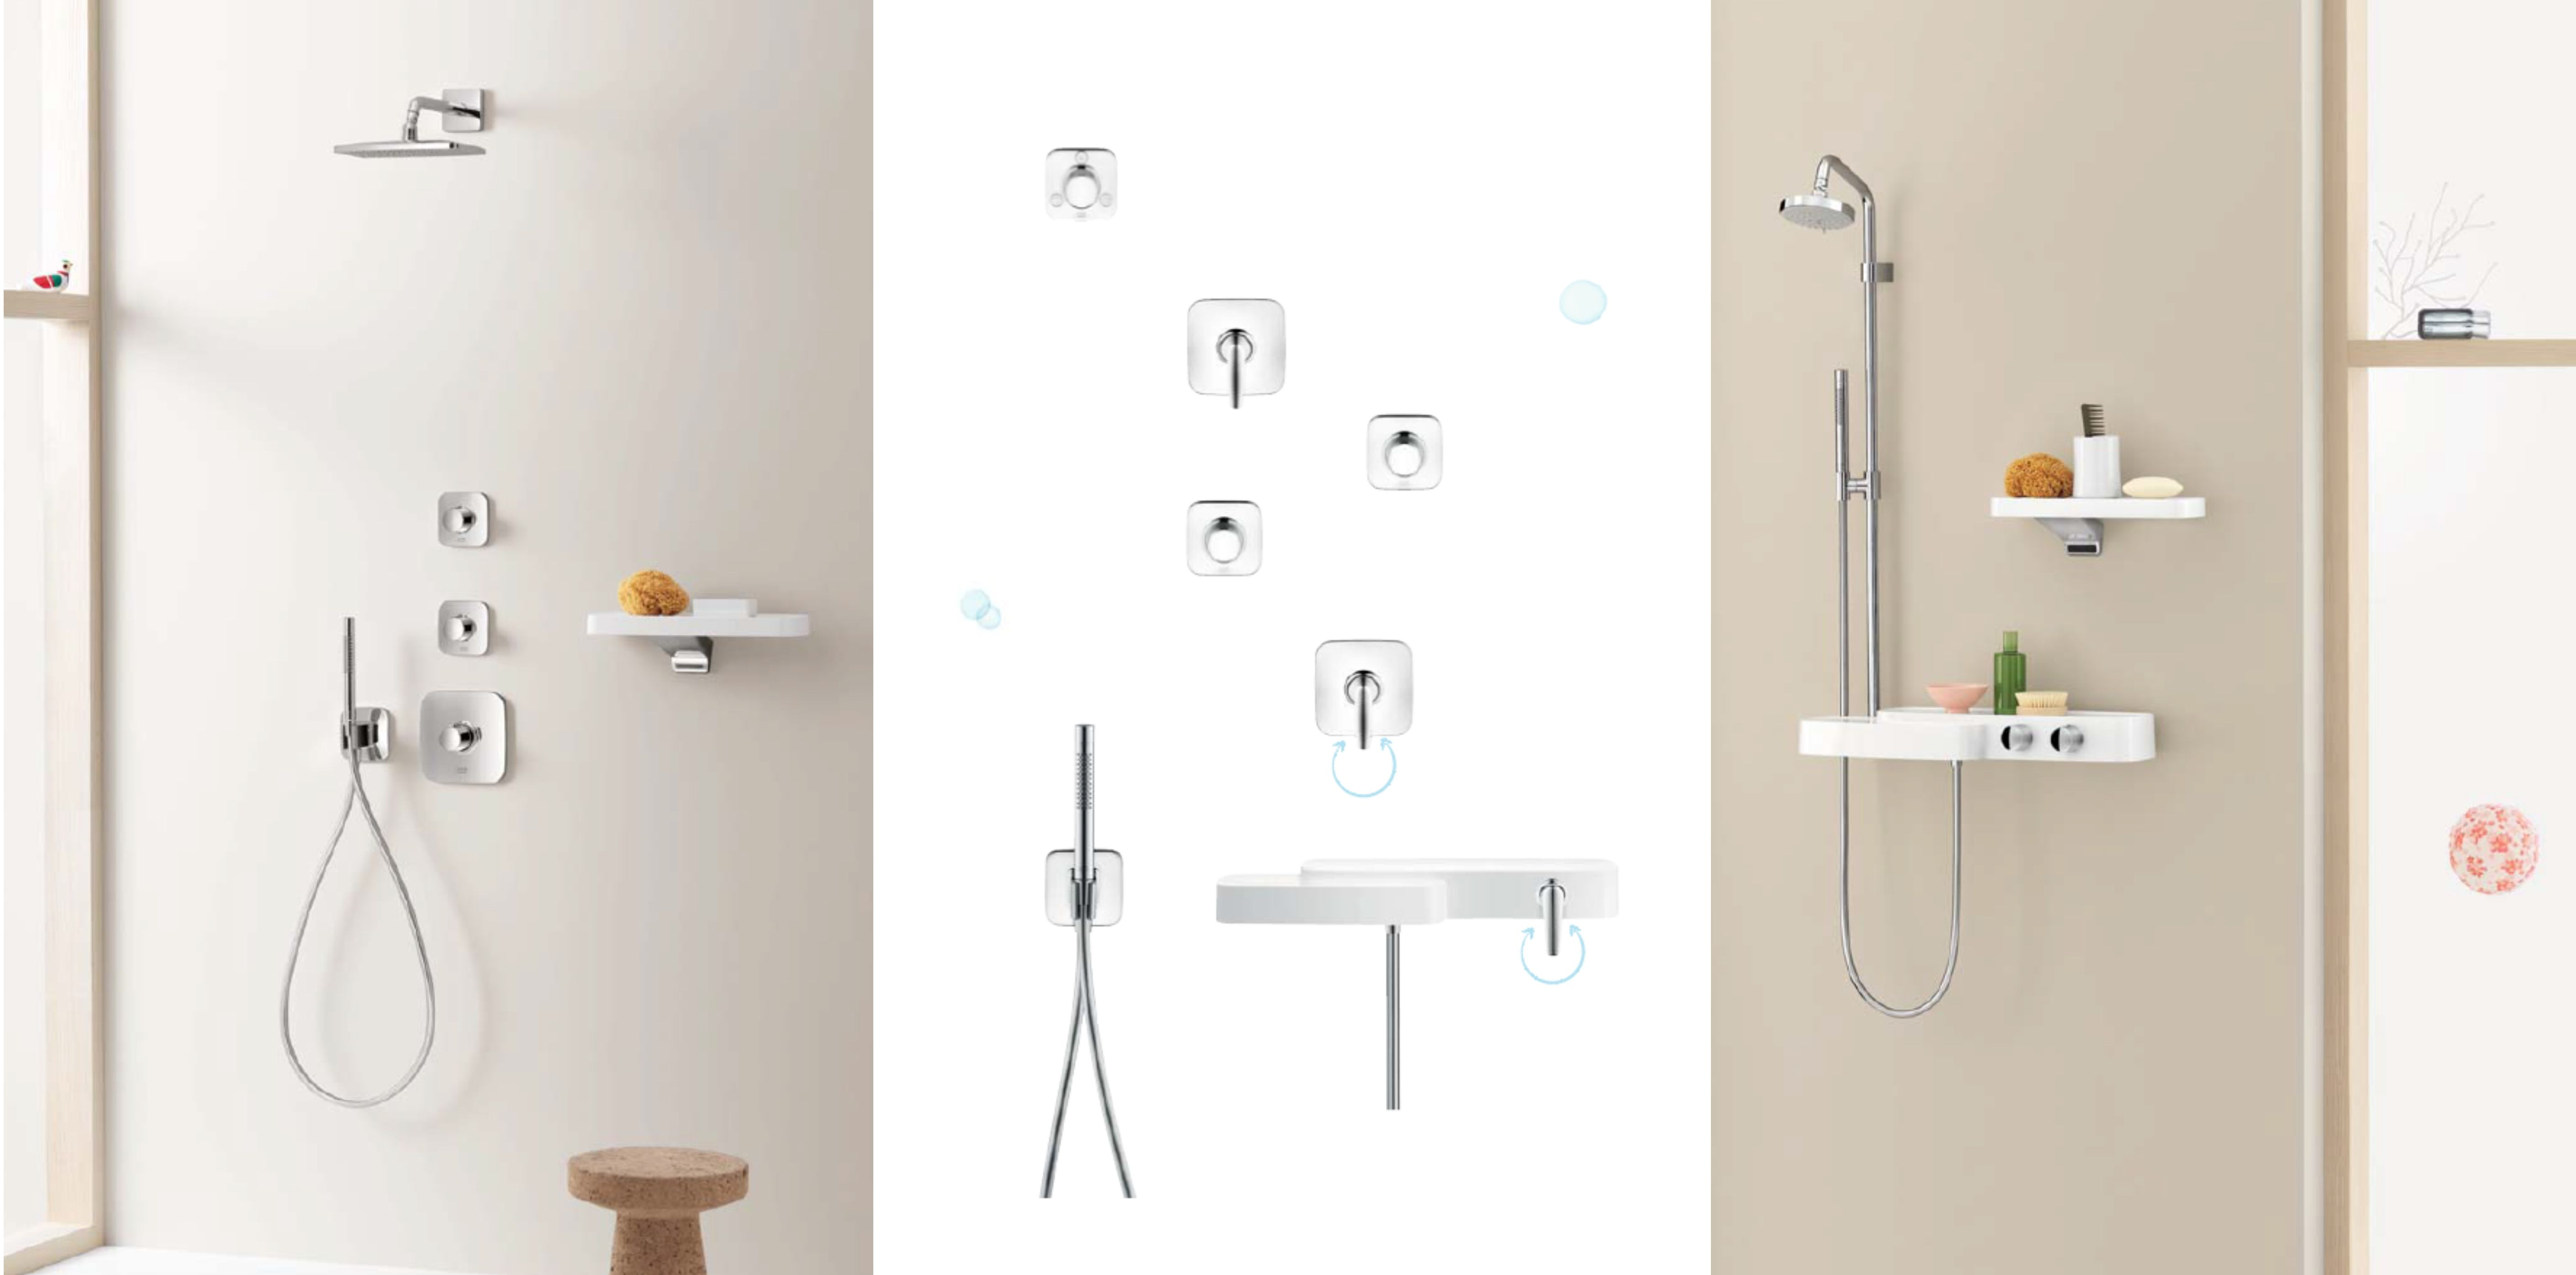 hansgrohe shower systems google search